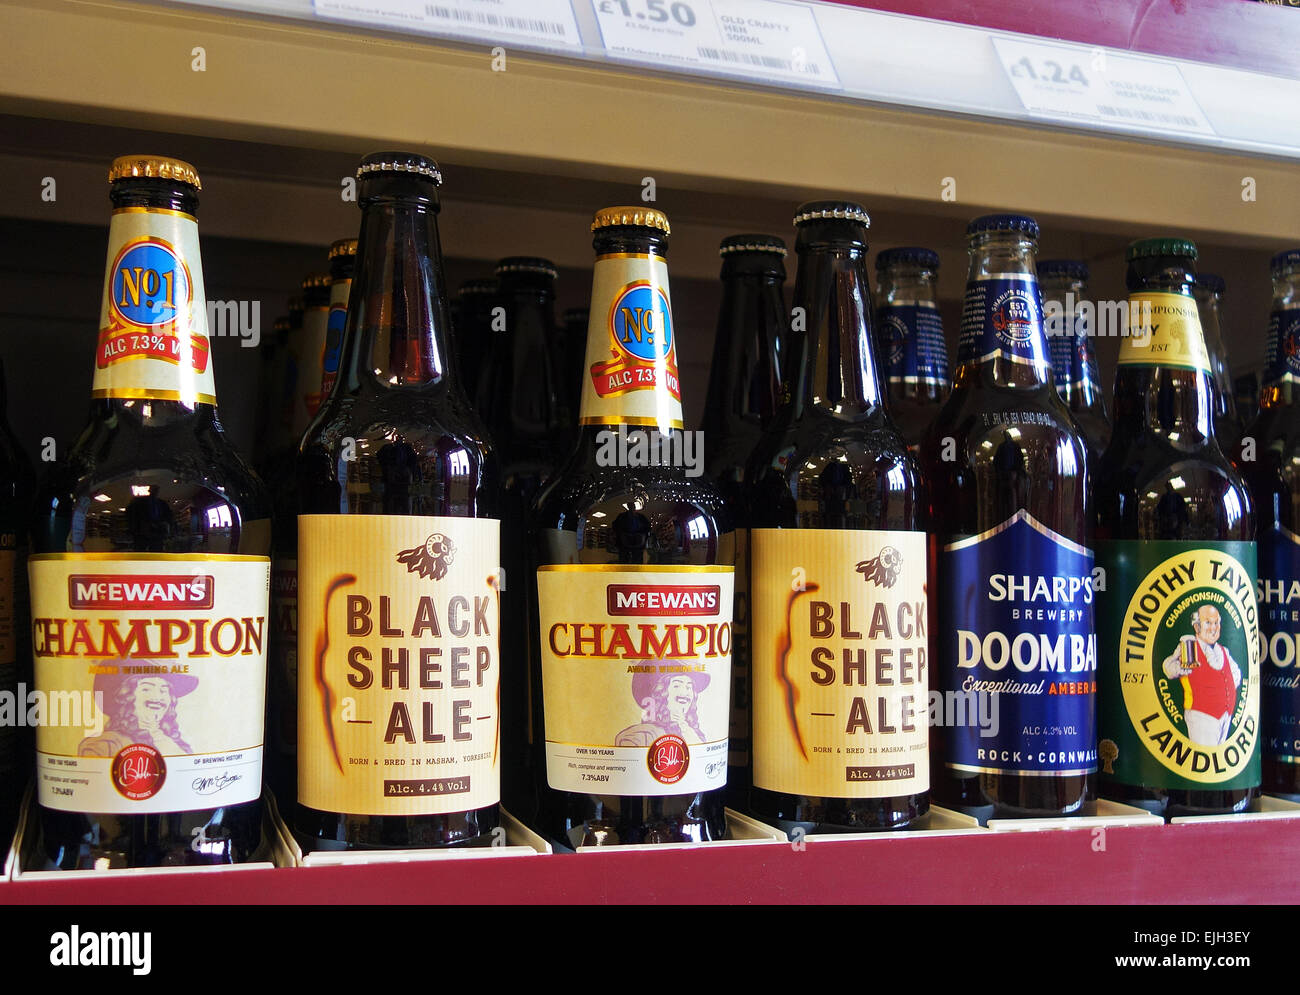 Bottles of Premium Beers on a supermarket shelf in the uk - Stock Image